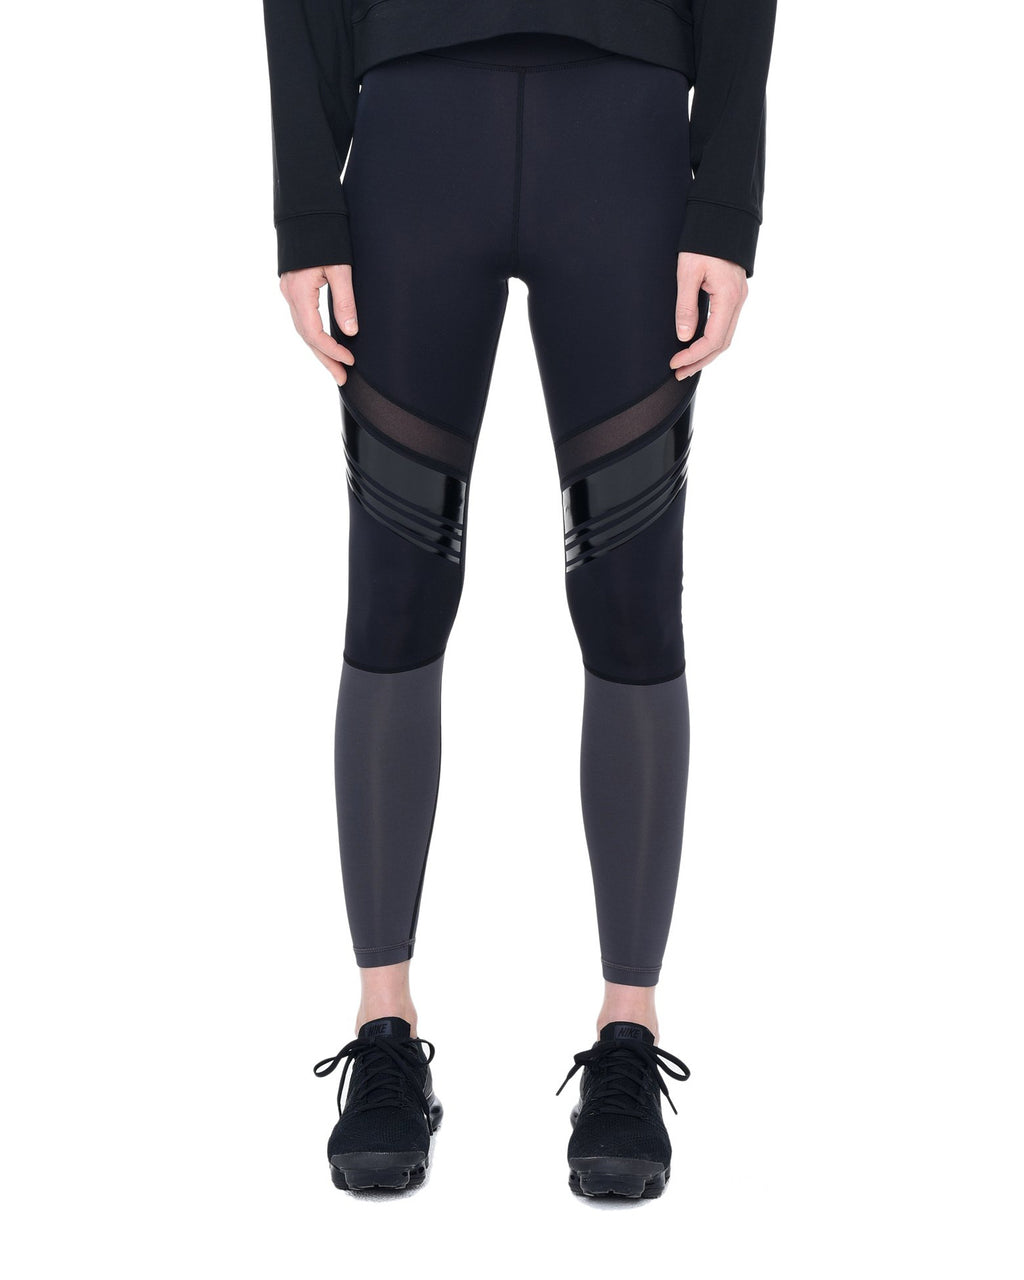 Reece Leggings Black